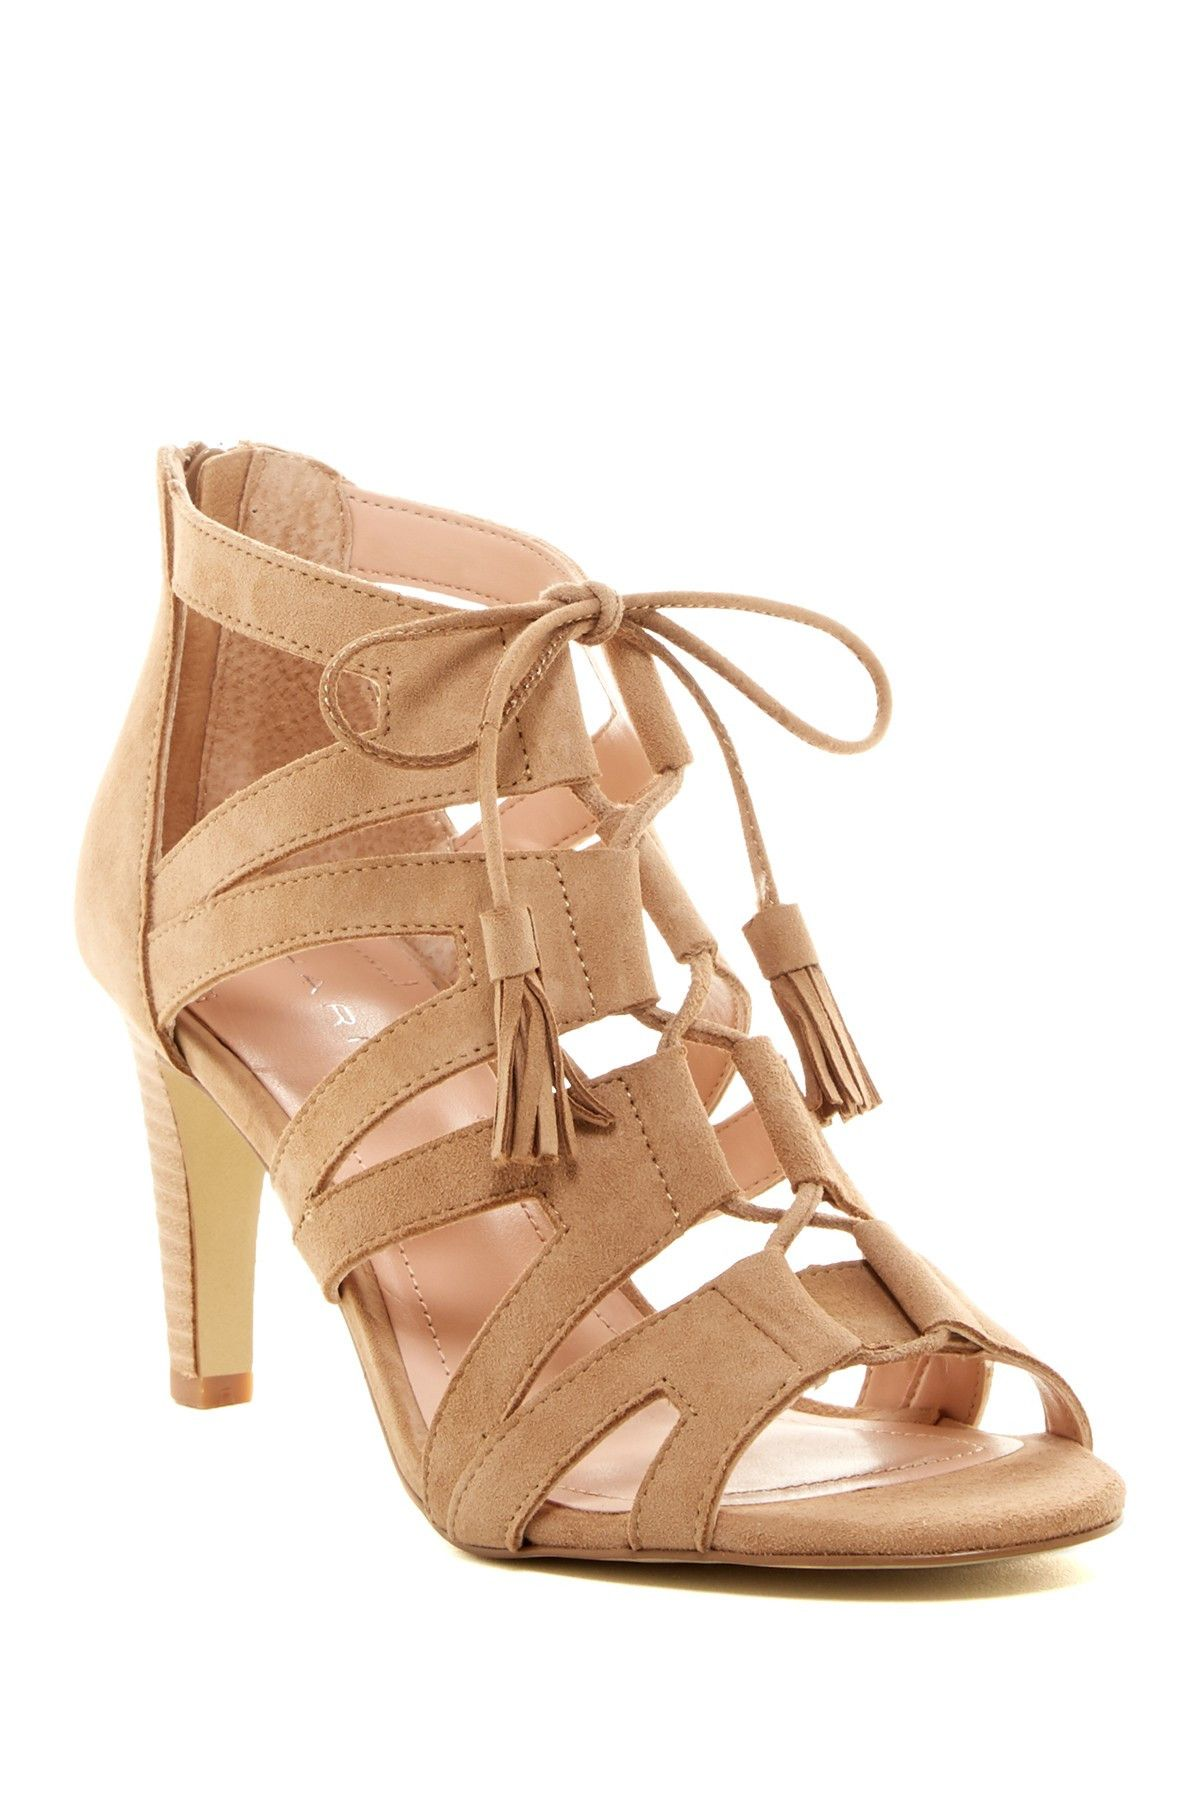 c1c8b983a8 Spring sandals. Tahari Luck Sandal. | Shoes for Days | Shoes ...